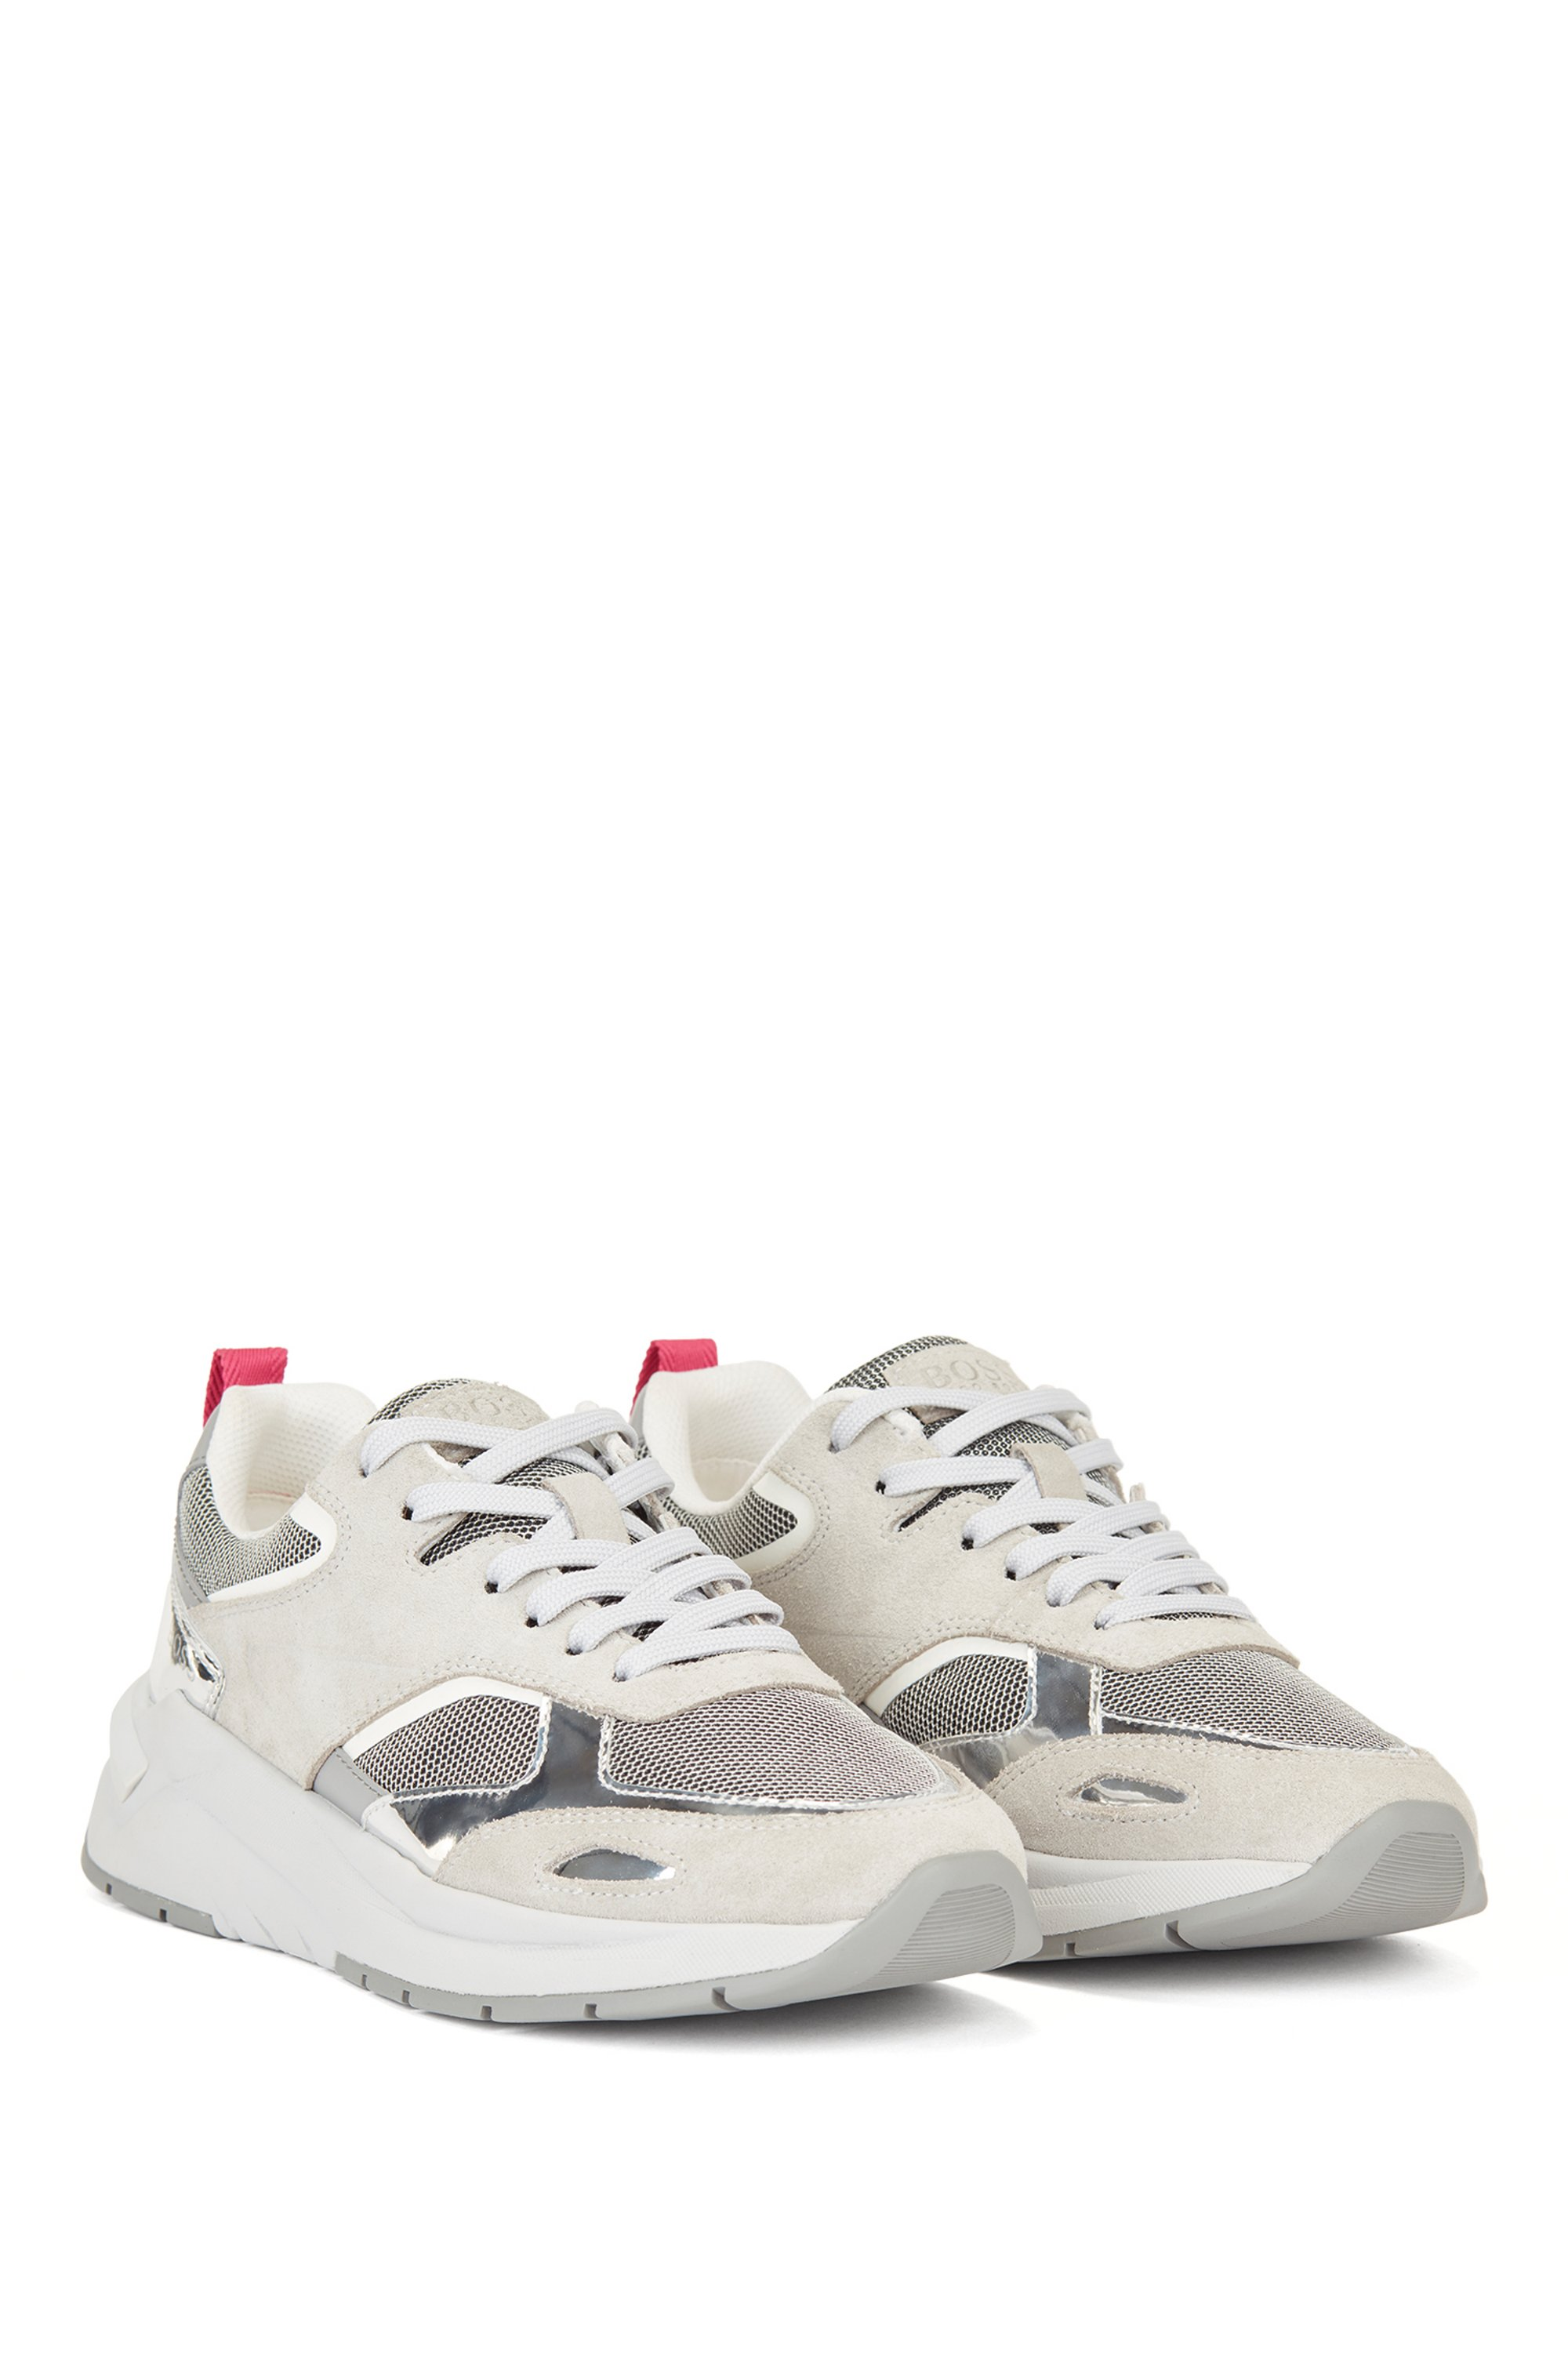 Hybrid trainers with metallic details